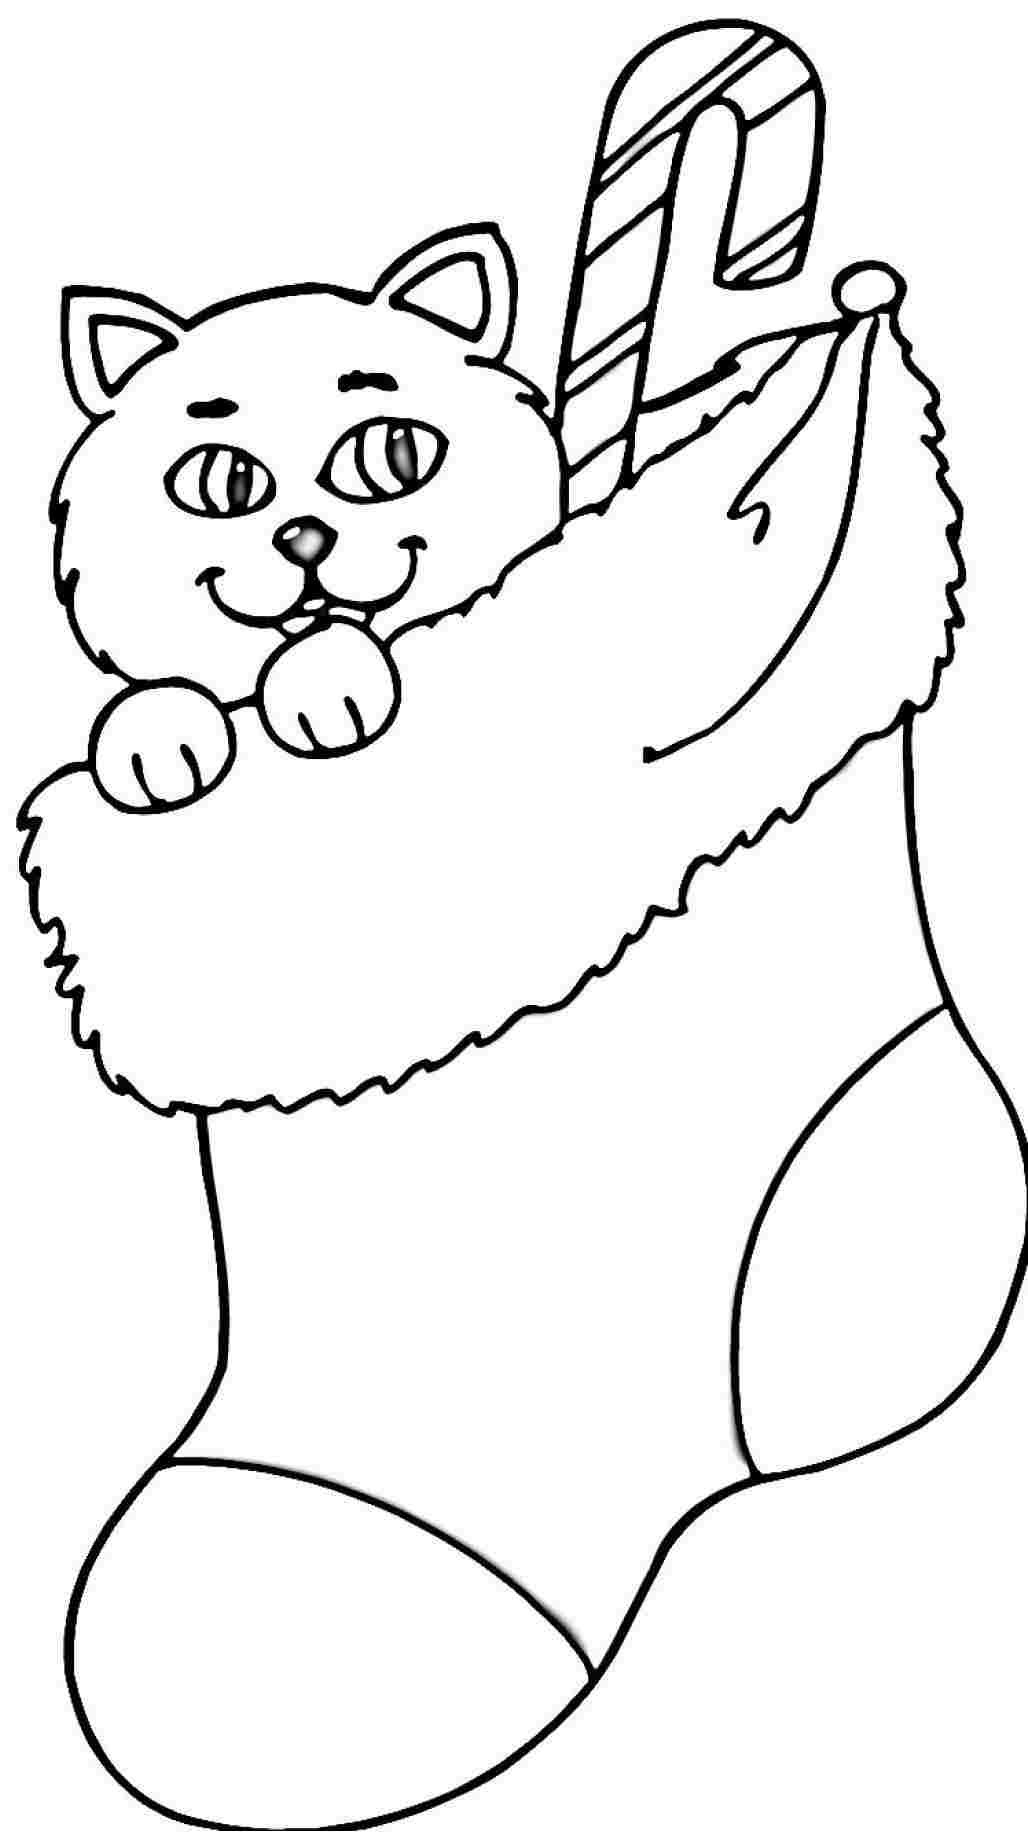 Christmas Coloring Pages Dltk With Stocking Page On Archives And 1